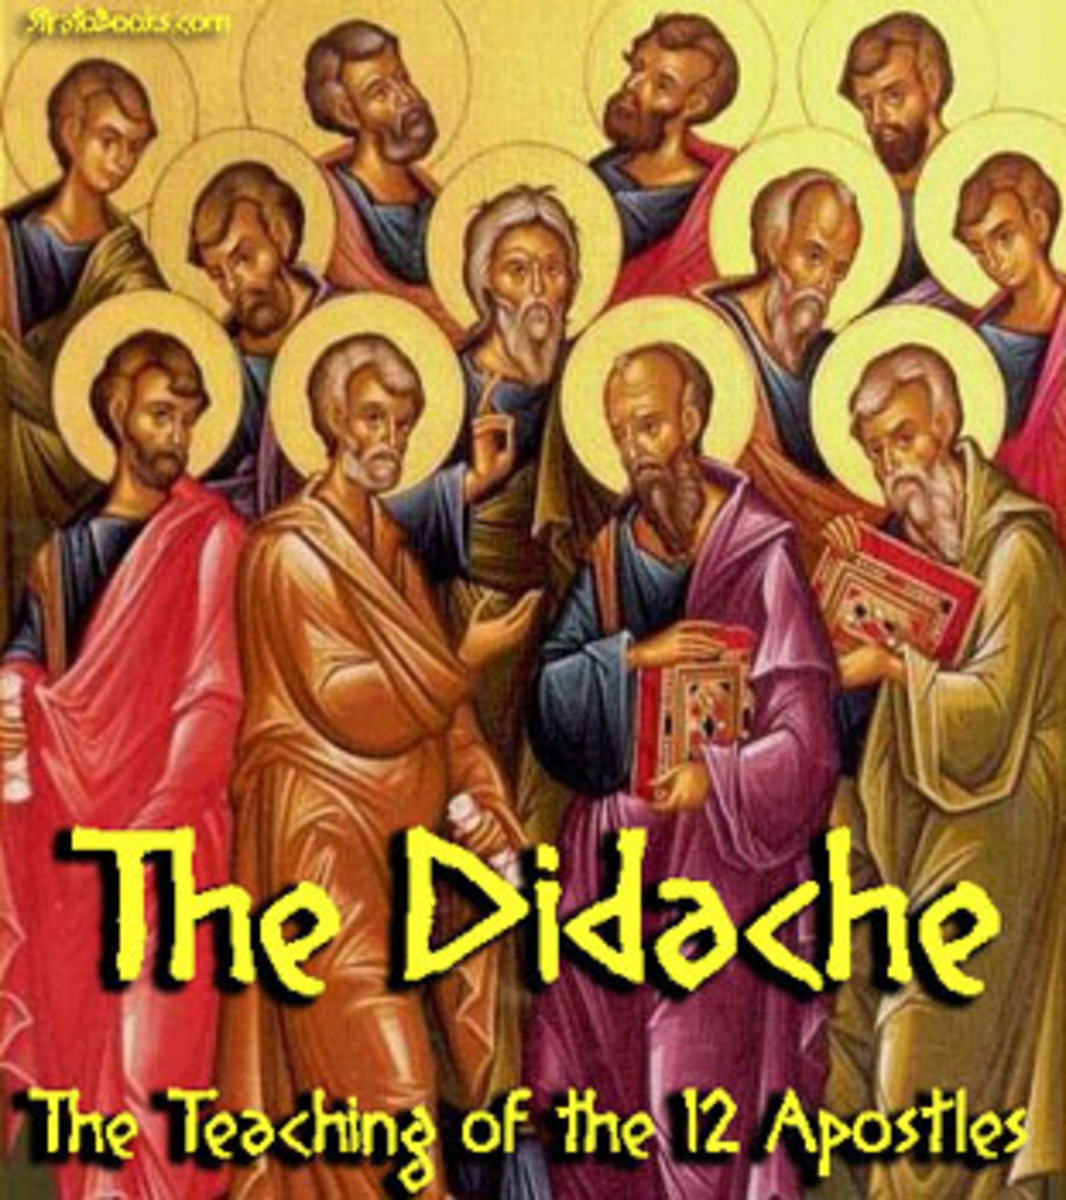 THE DIDACHE IS STILL IN PRINT